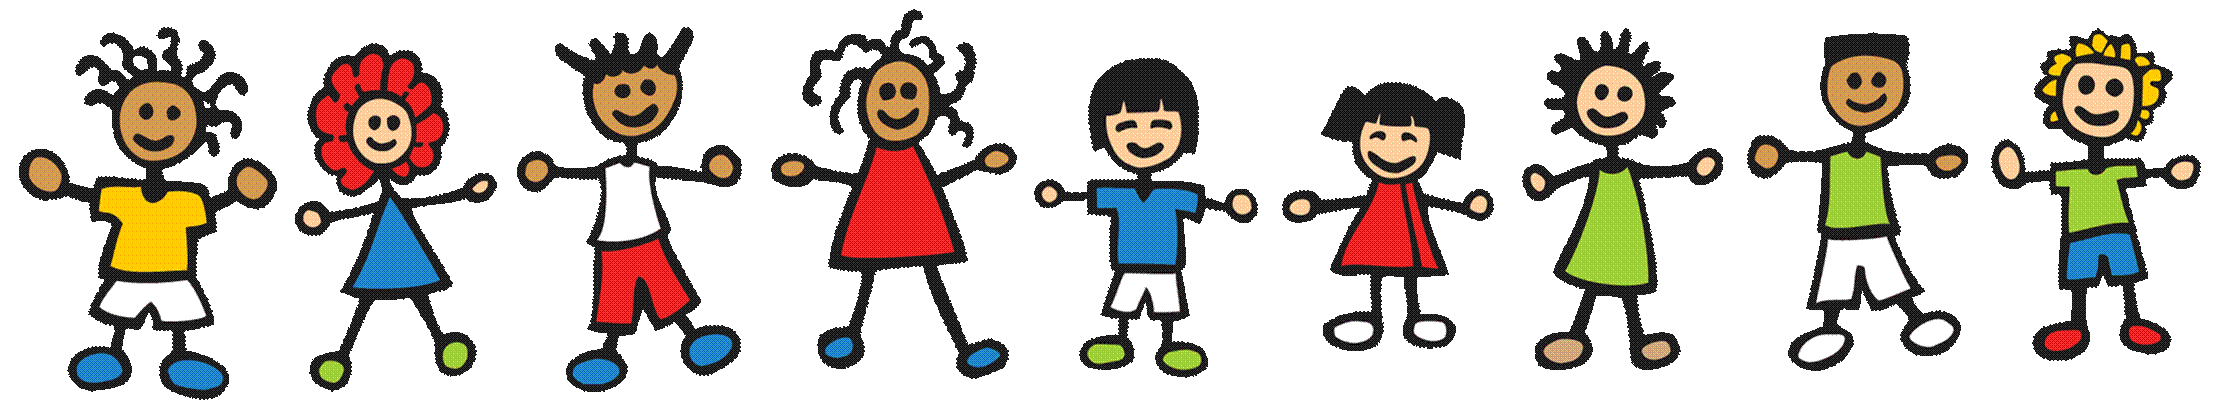 Children Helping Each Other Clipart Back-Children Helping Each Other Clipart Background 1 HD Wallpapers-2